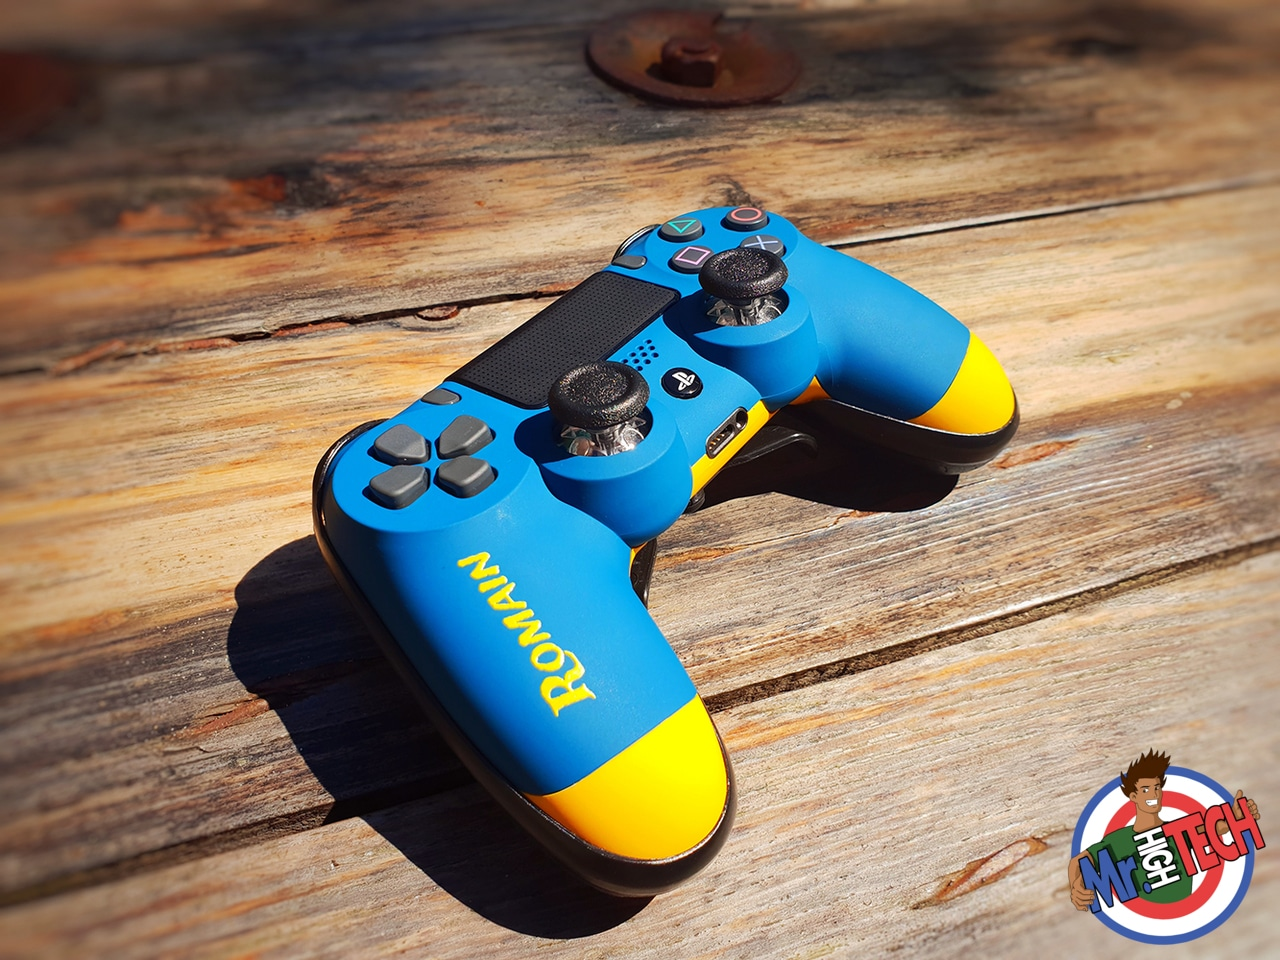 https://www.mrhightech.fr/wp-content/uploads/2018/08/manette-ps4-perso-romain-1.jpg